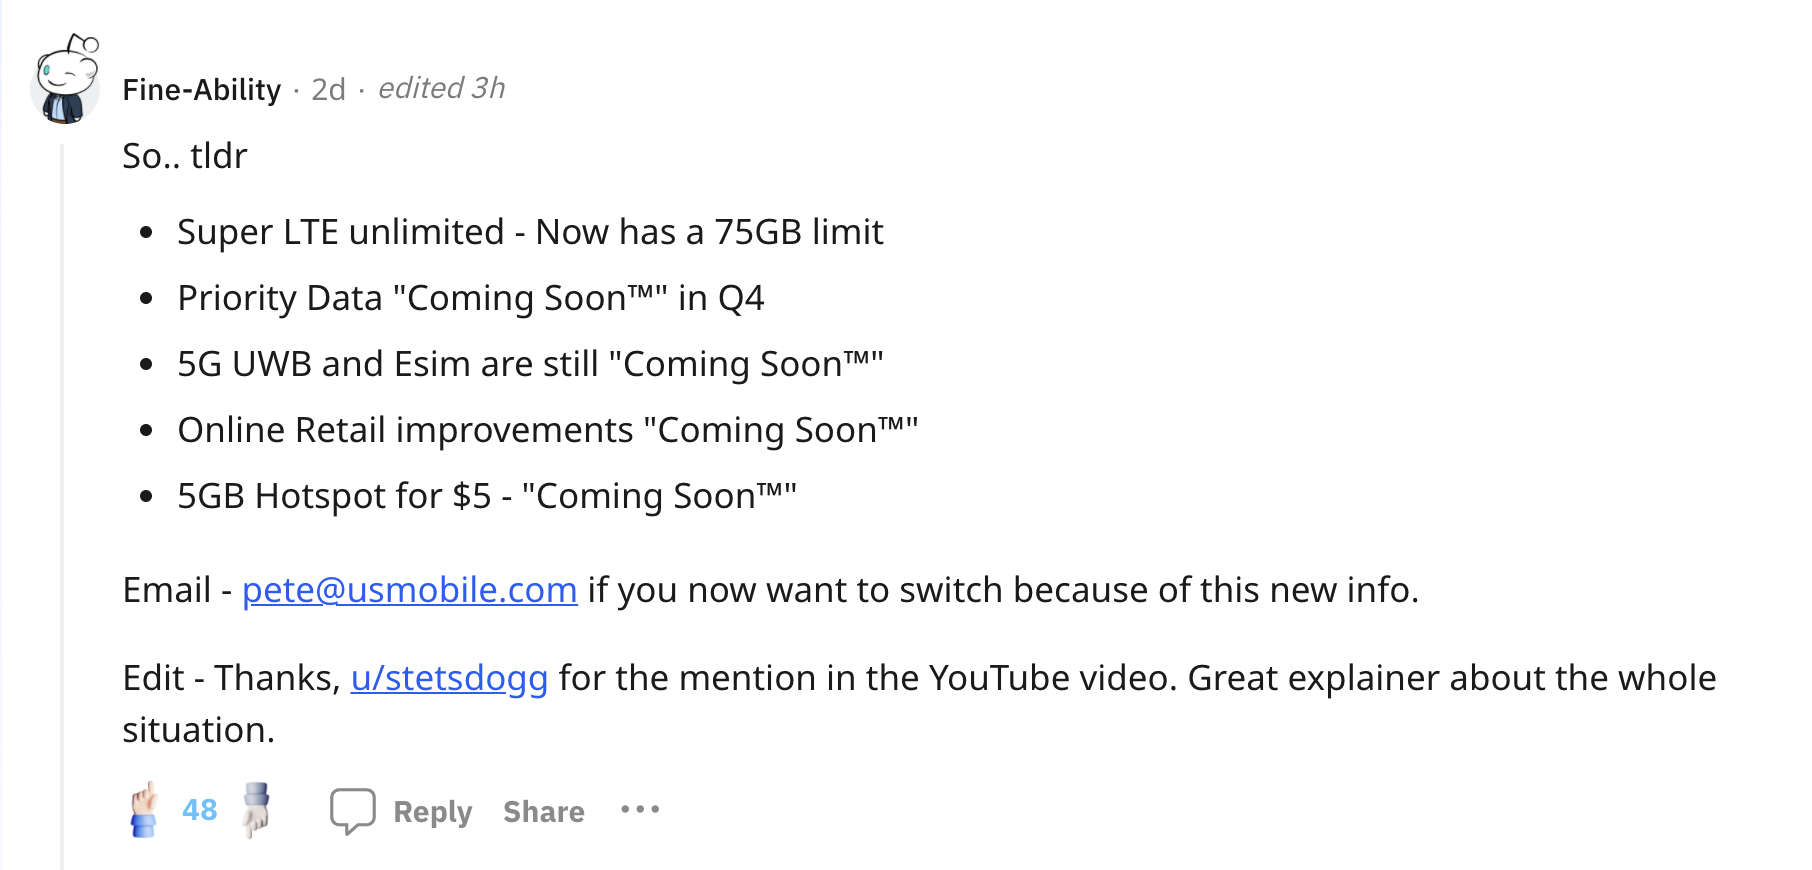 """Reddit user /u/Fine-Ability points out that USMobile has said numerous features are """"Coming Soon"""" without actually launching them"""